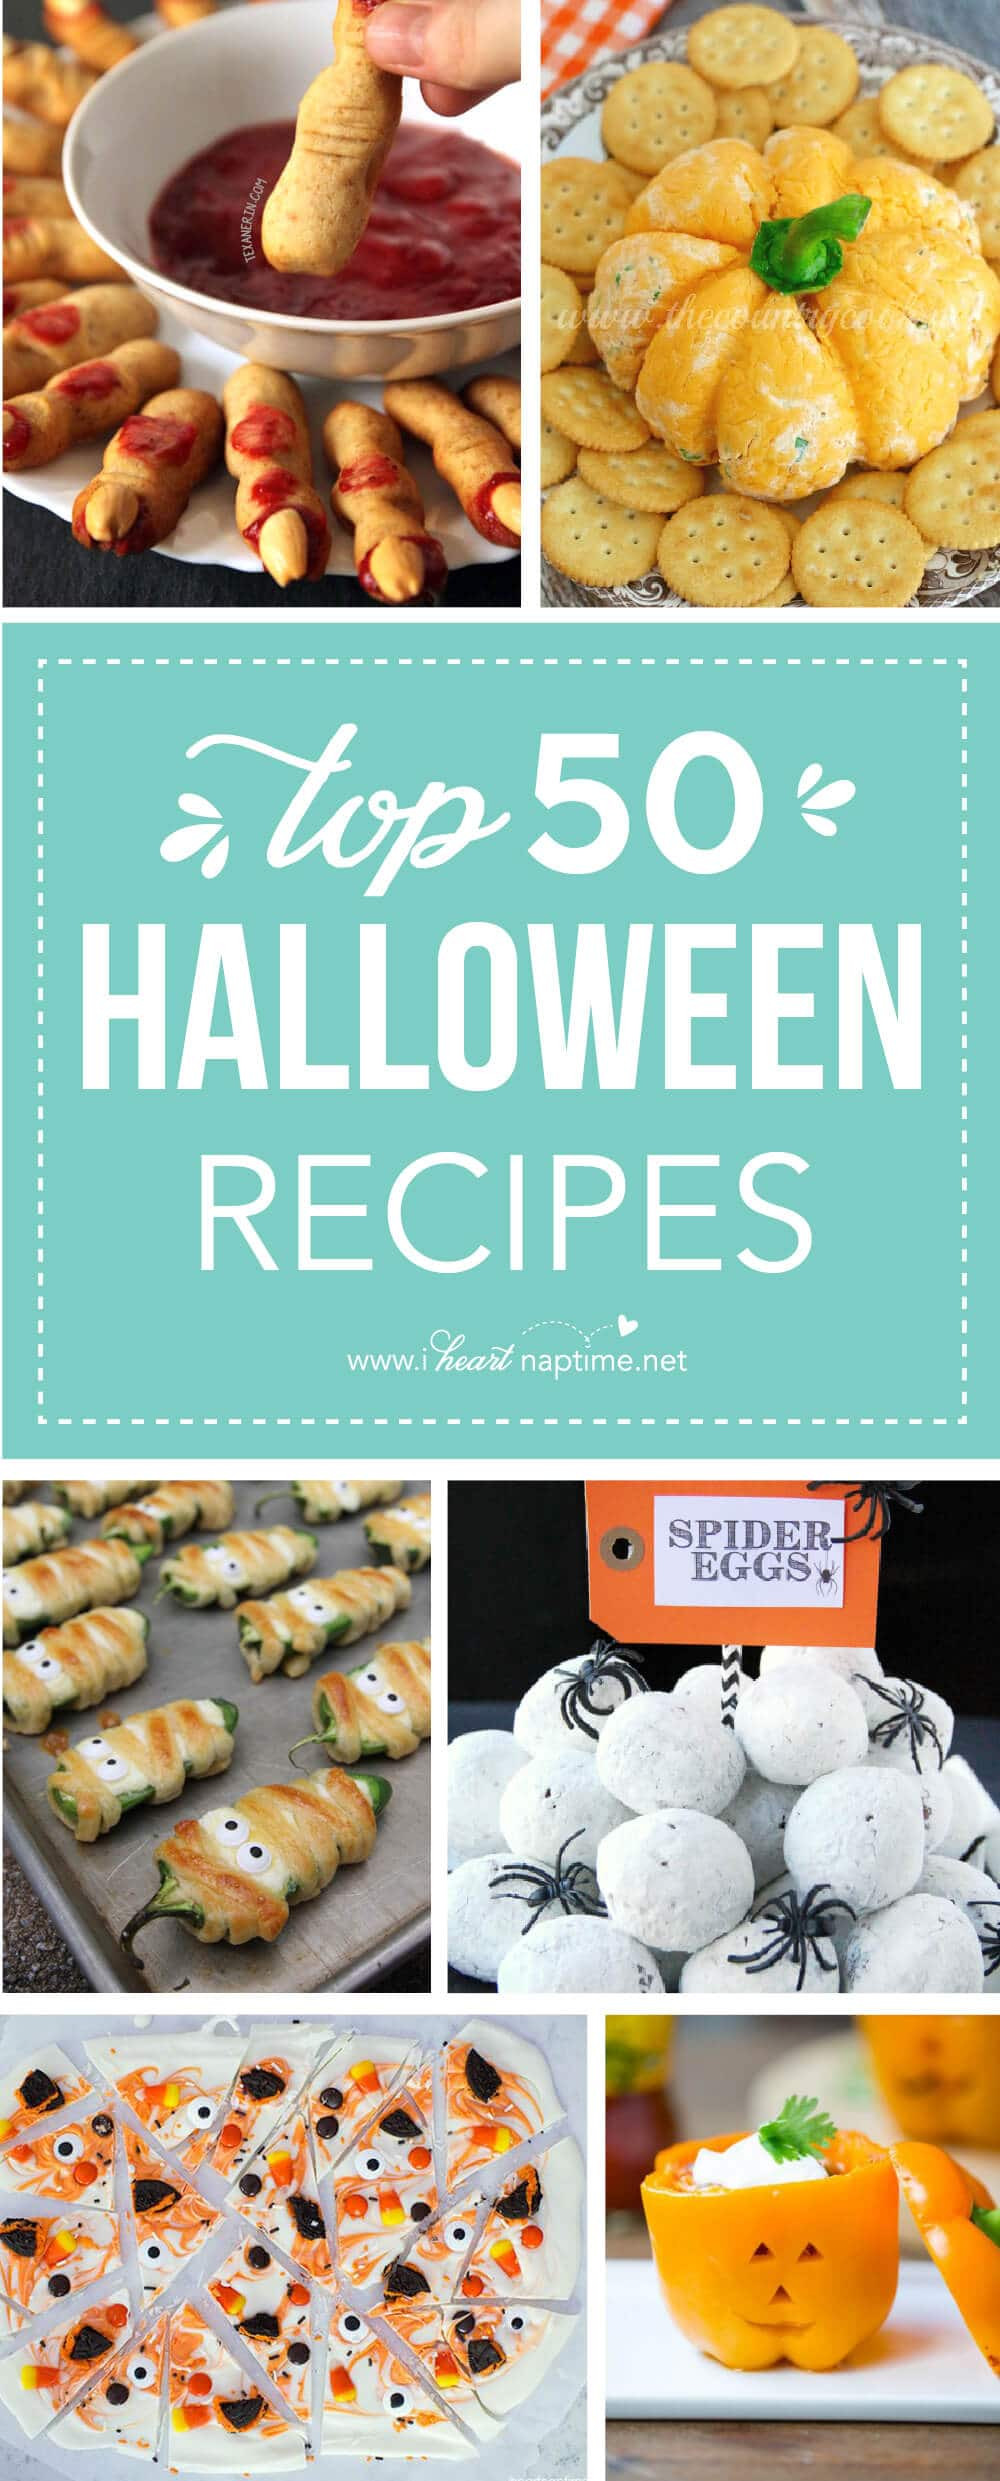 Halloween Side Dishes For Parties  Top 50 Halloween Recipes I Heart Nap Time